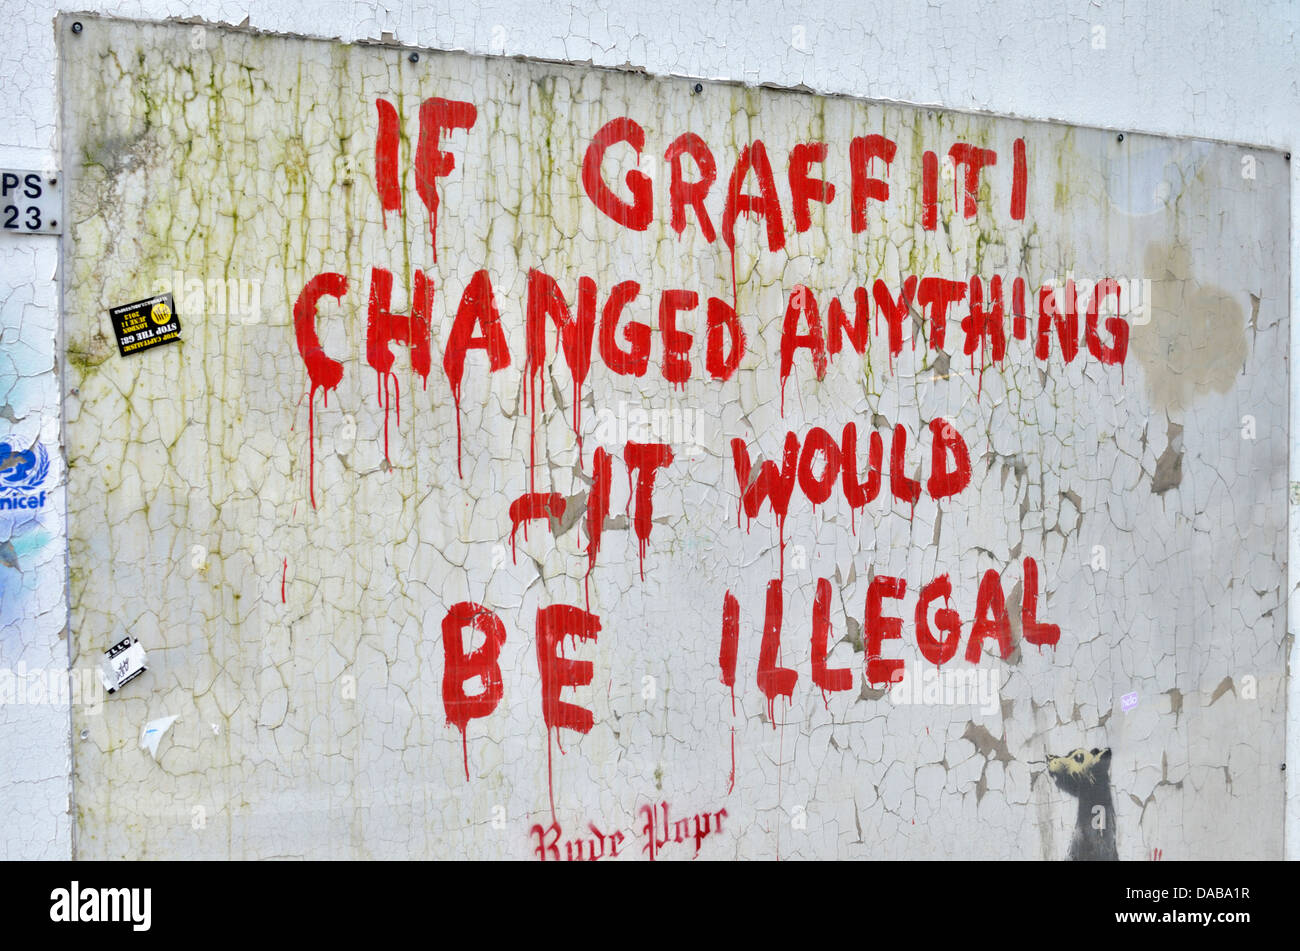 Graffiti on wall reading: ' If graffiti changed anything it would be illegal ' - Stock Image